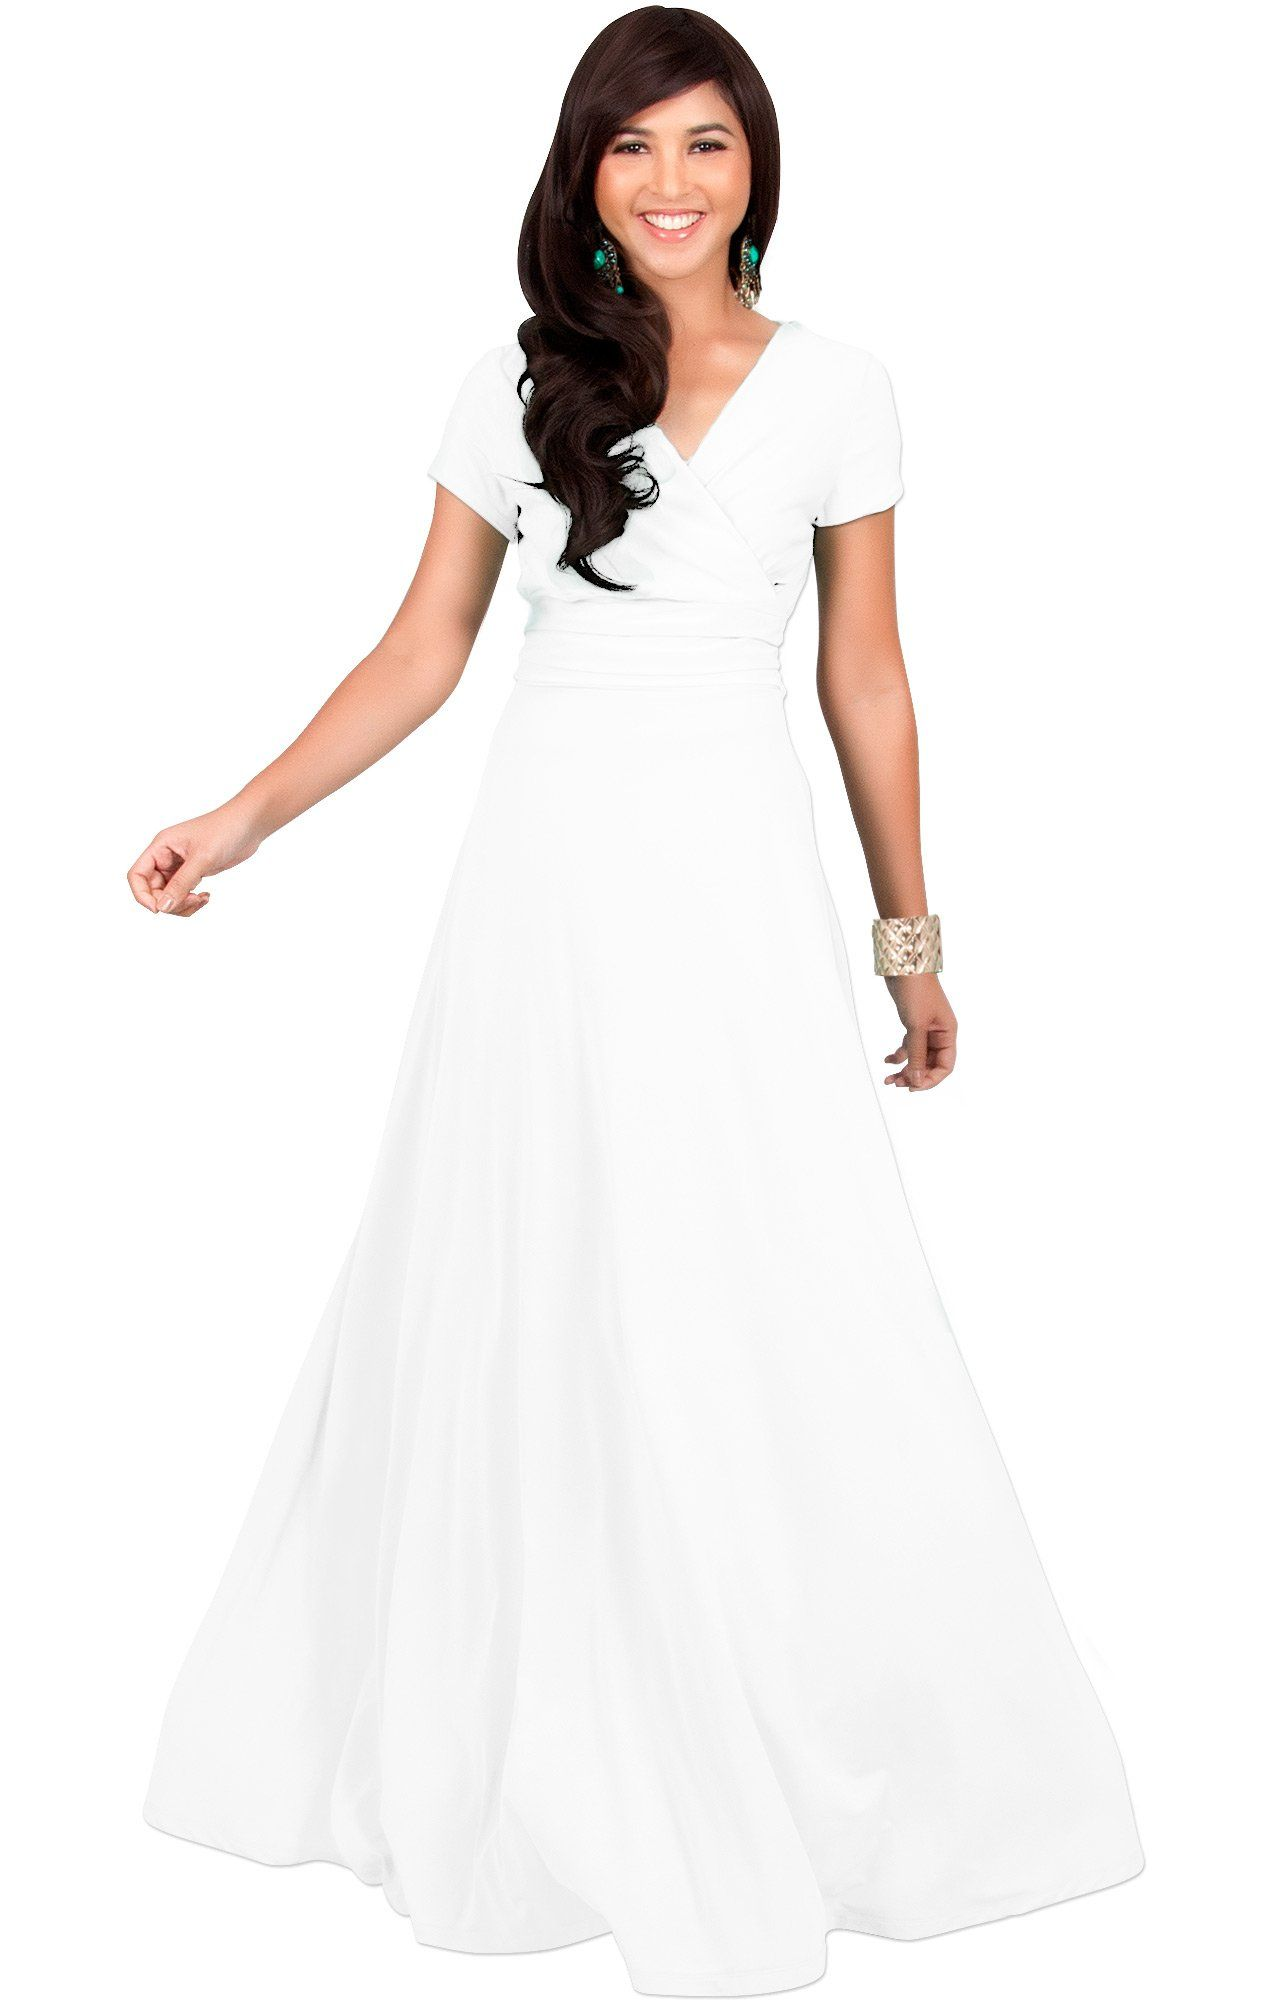 984e81c022 KOH KOH Womens Long Cap Short Sleeve Vneck Flowy Cocktail Slimming Summer  Sexy Casual Formal Sun Sundress Work Cute Gown Gowns Maxi Dress Dresses  Ivory ...